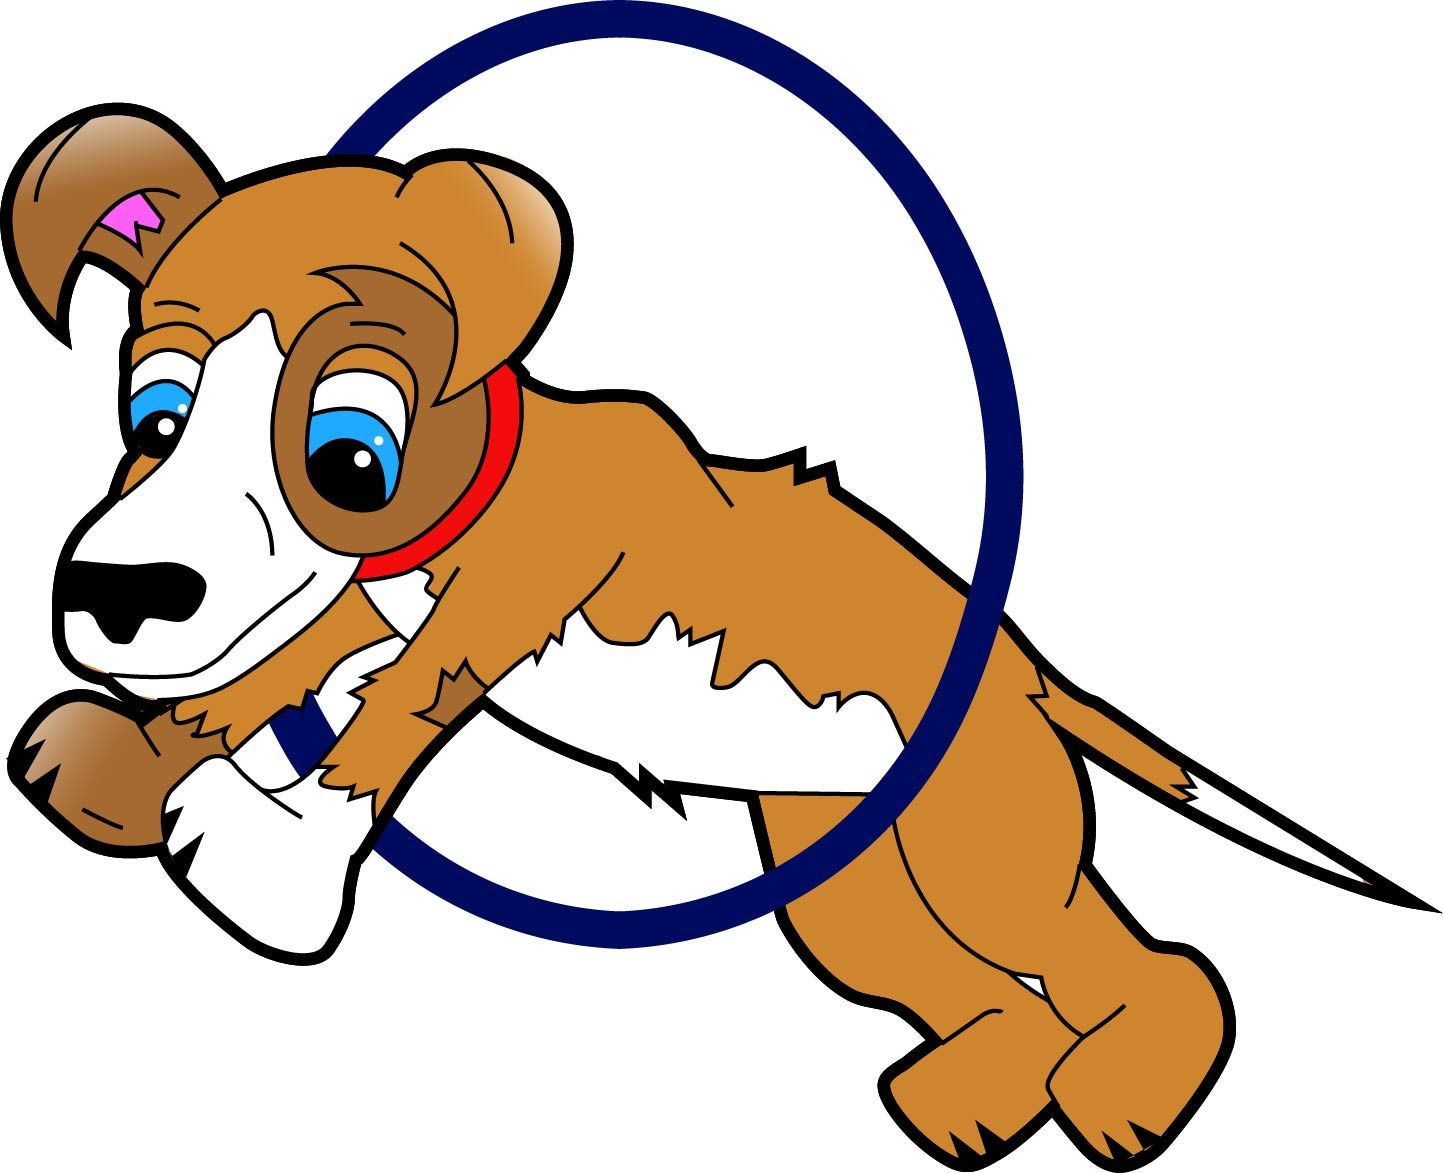 Real dog jumping clipart jpg freeuse stock Real dog jumping clipart - ClipartFest jpg freeuse stock